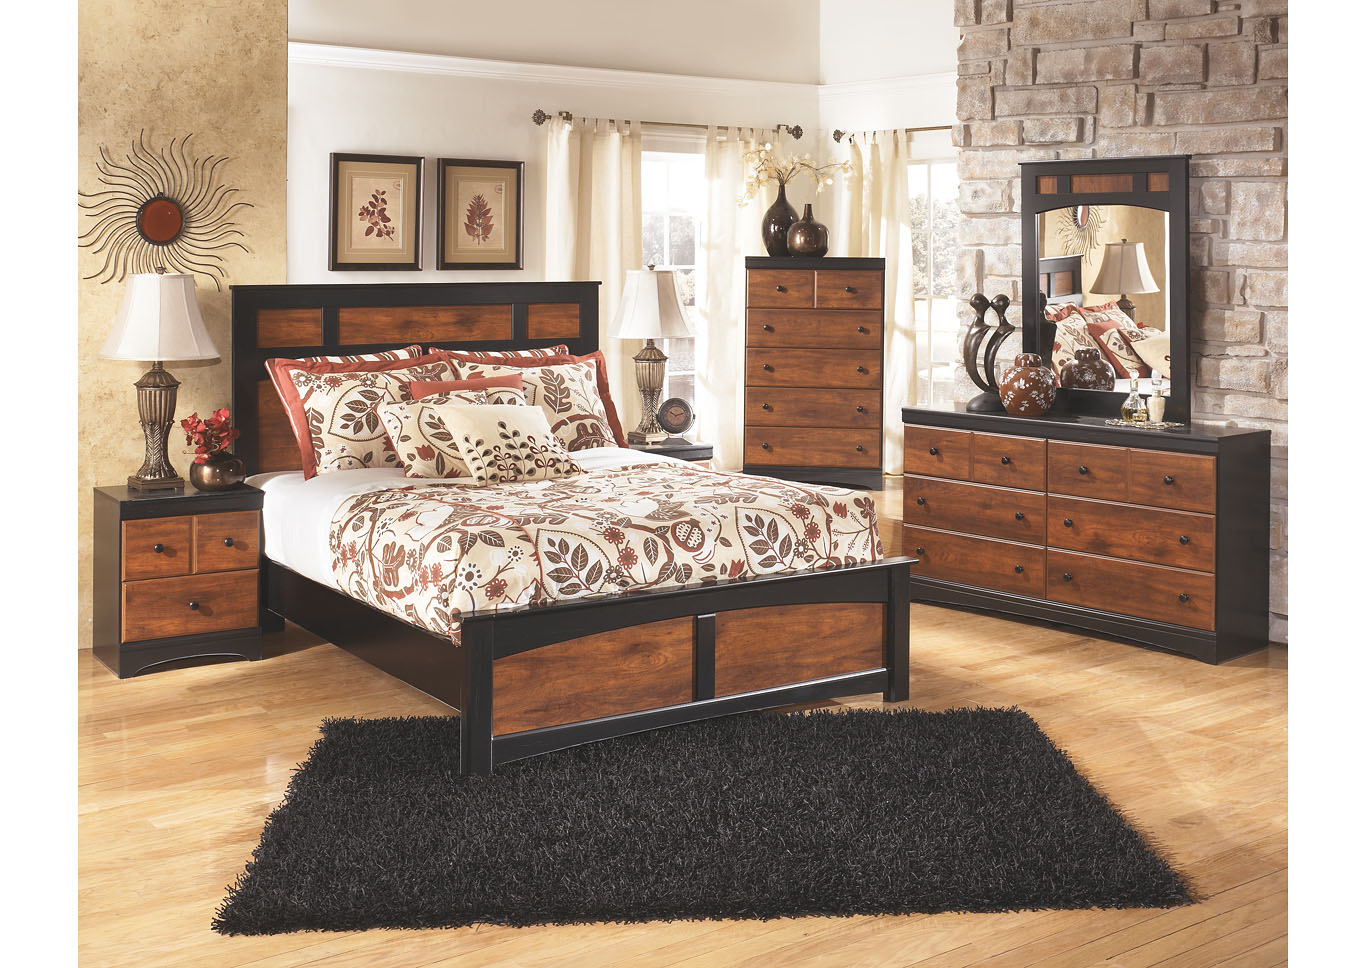 Aimwell Queen Panel Bed w/Dresser, Mirror & Drawer Chest,Signature Design By Ashley